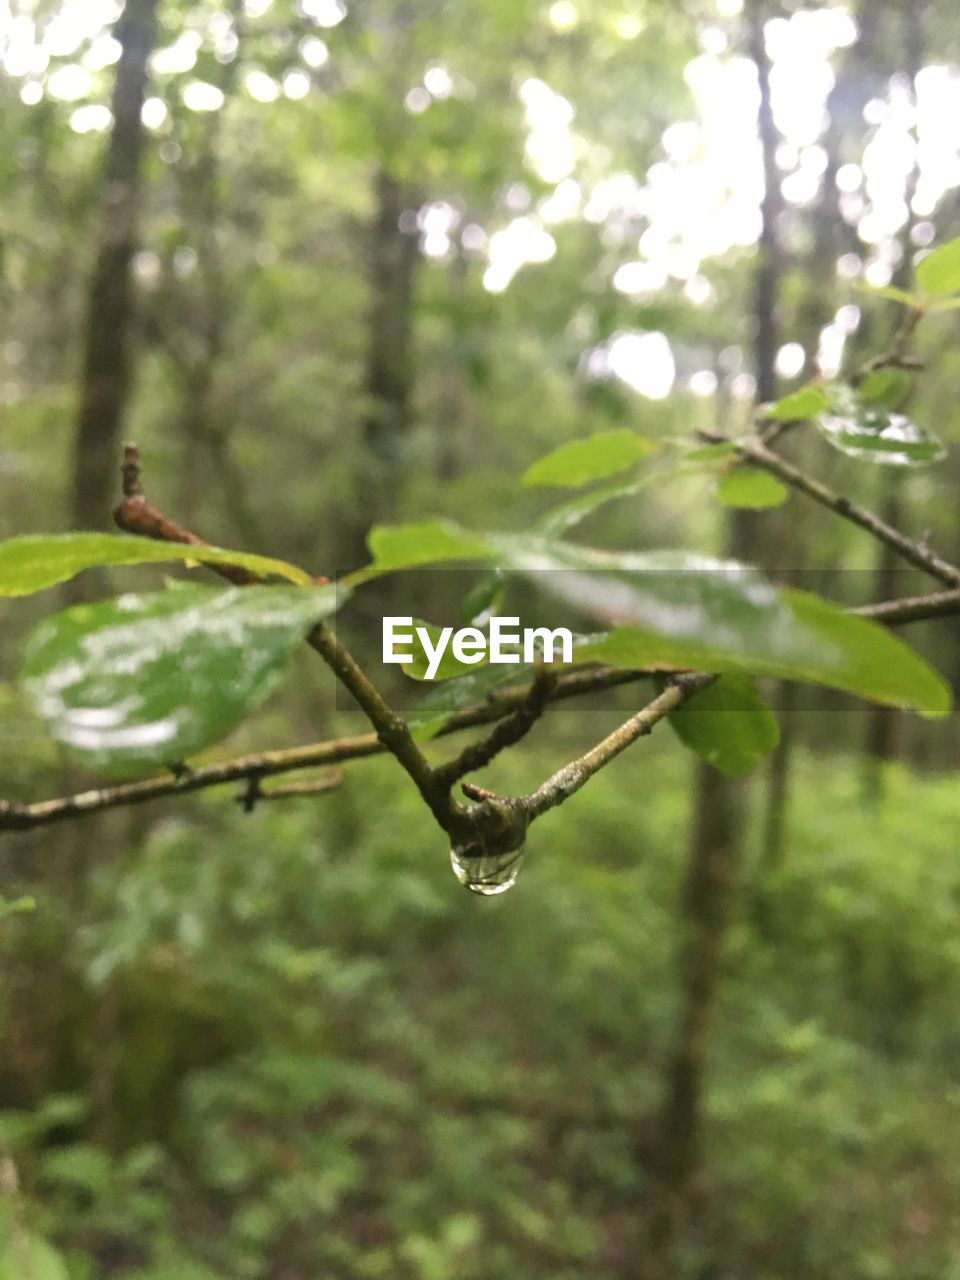 nature, growth, plant, leaf, focus on foreground, green color, no people, beauty in nature, day, outdoors, close-up, tree, branch, fragility, freshness, animal themes, water